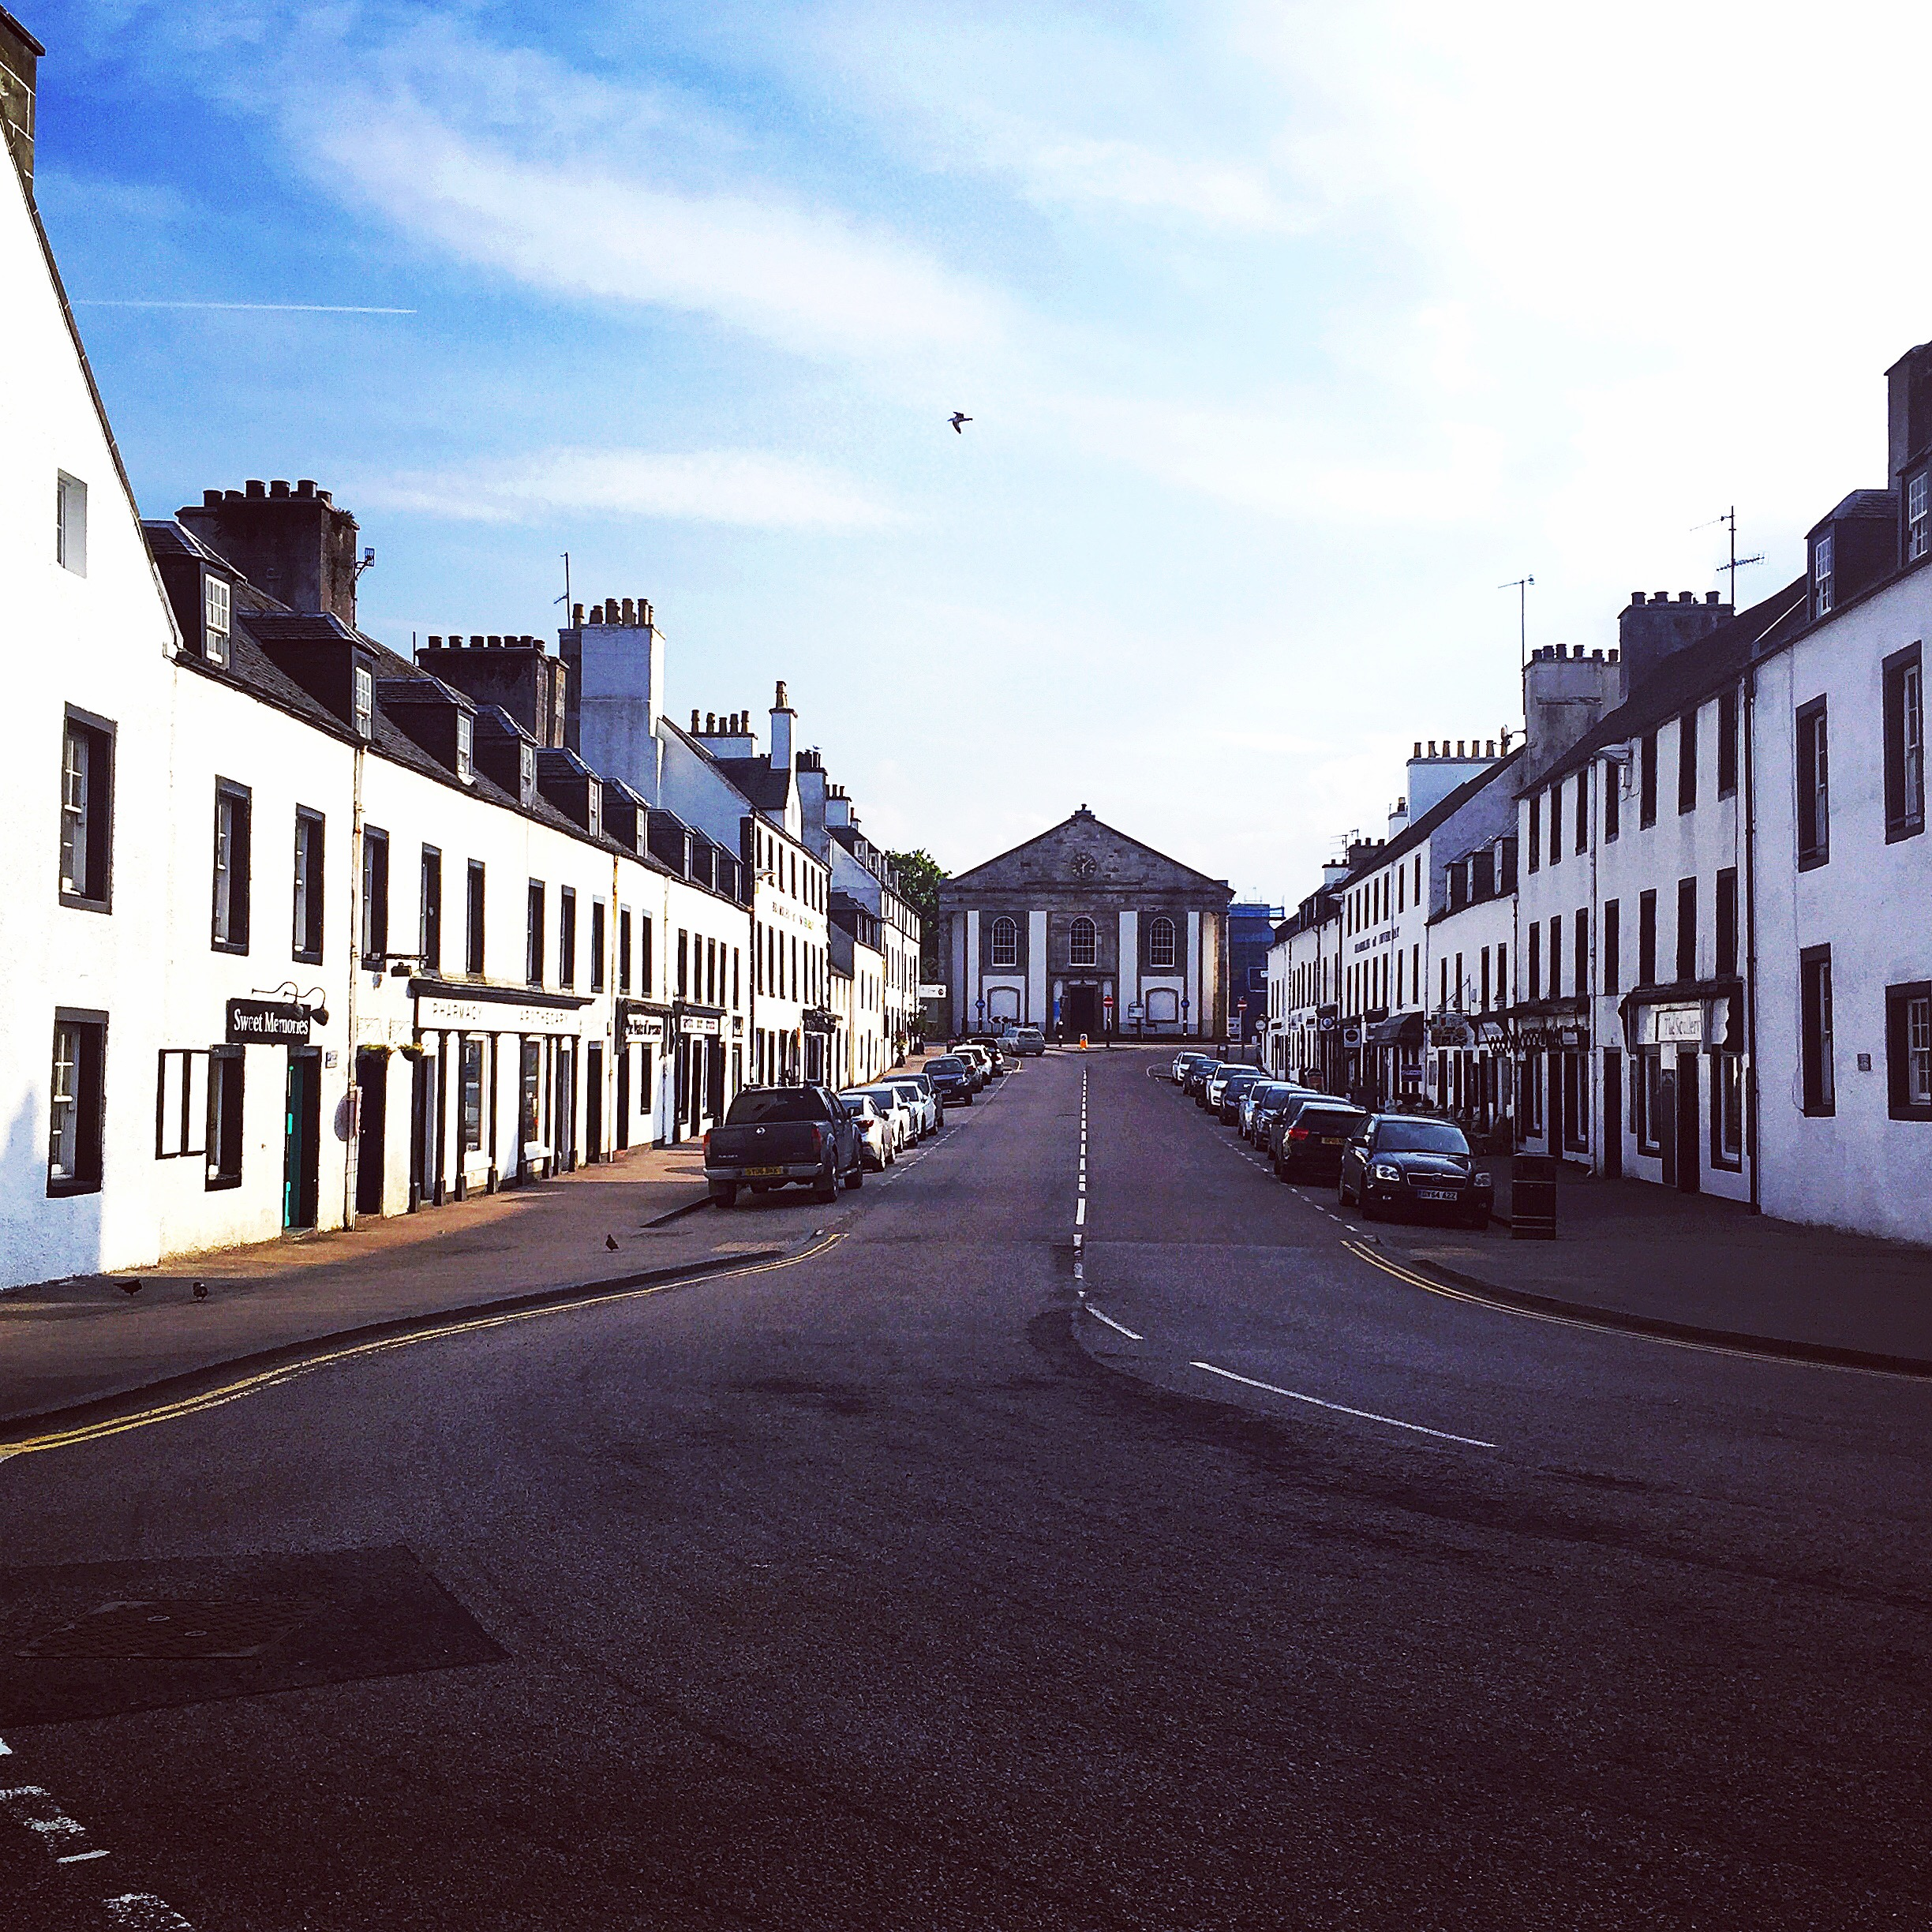 scotland-inveraray-high-street-architecture.JPG